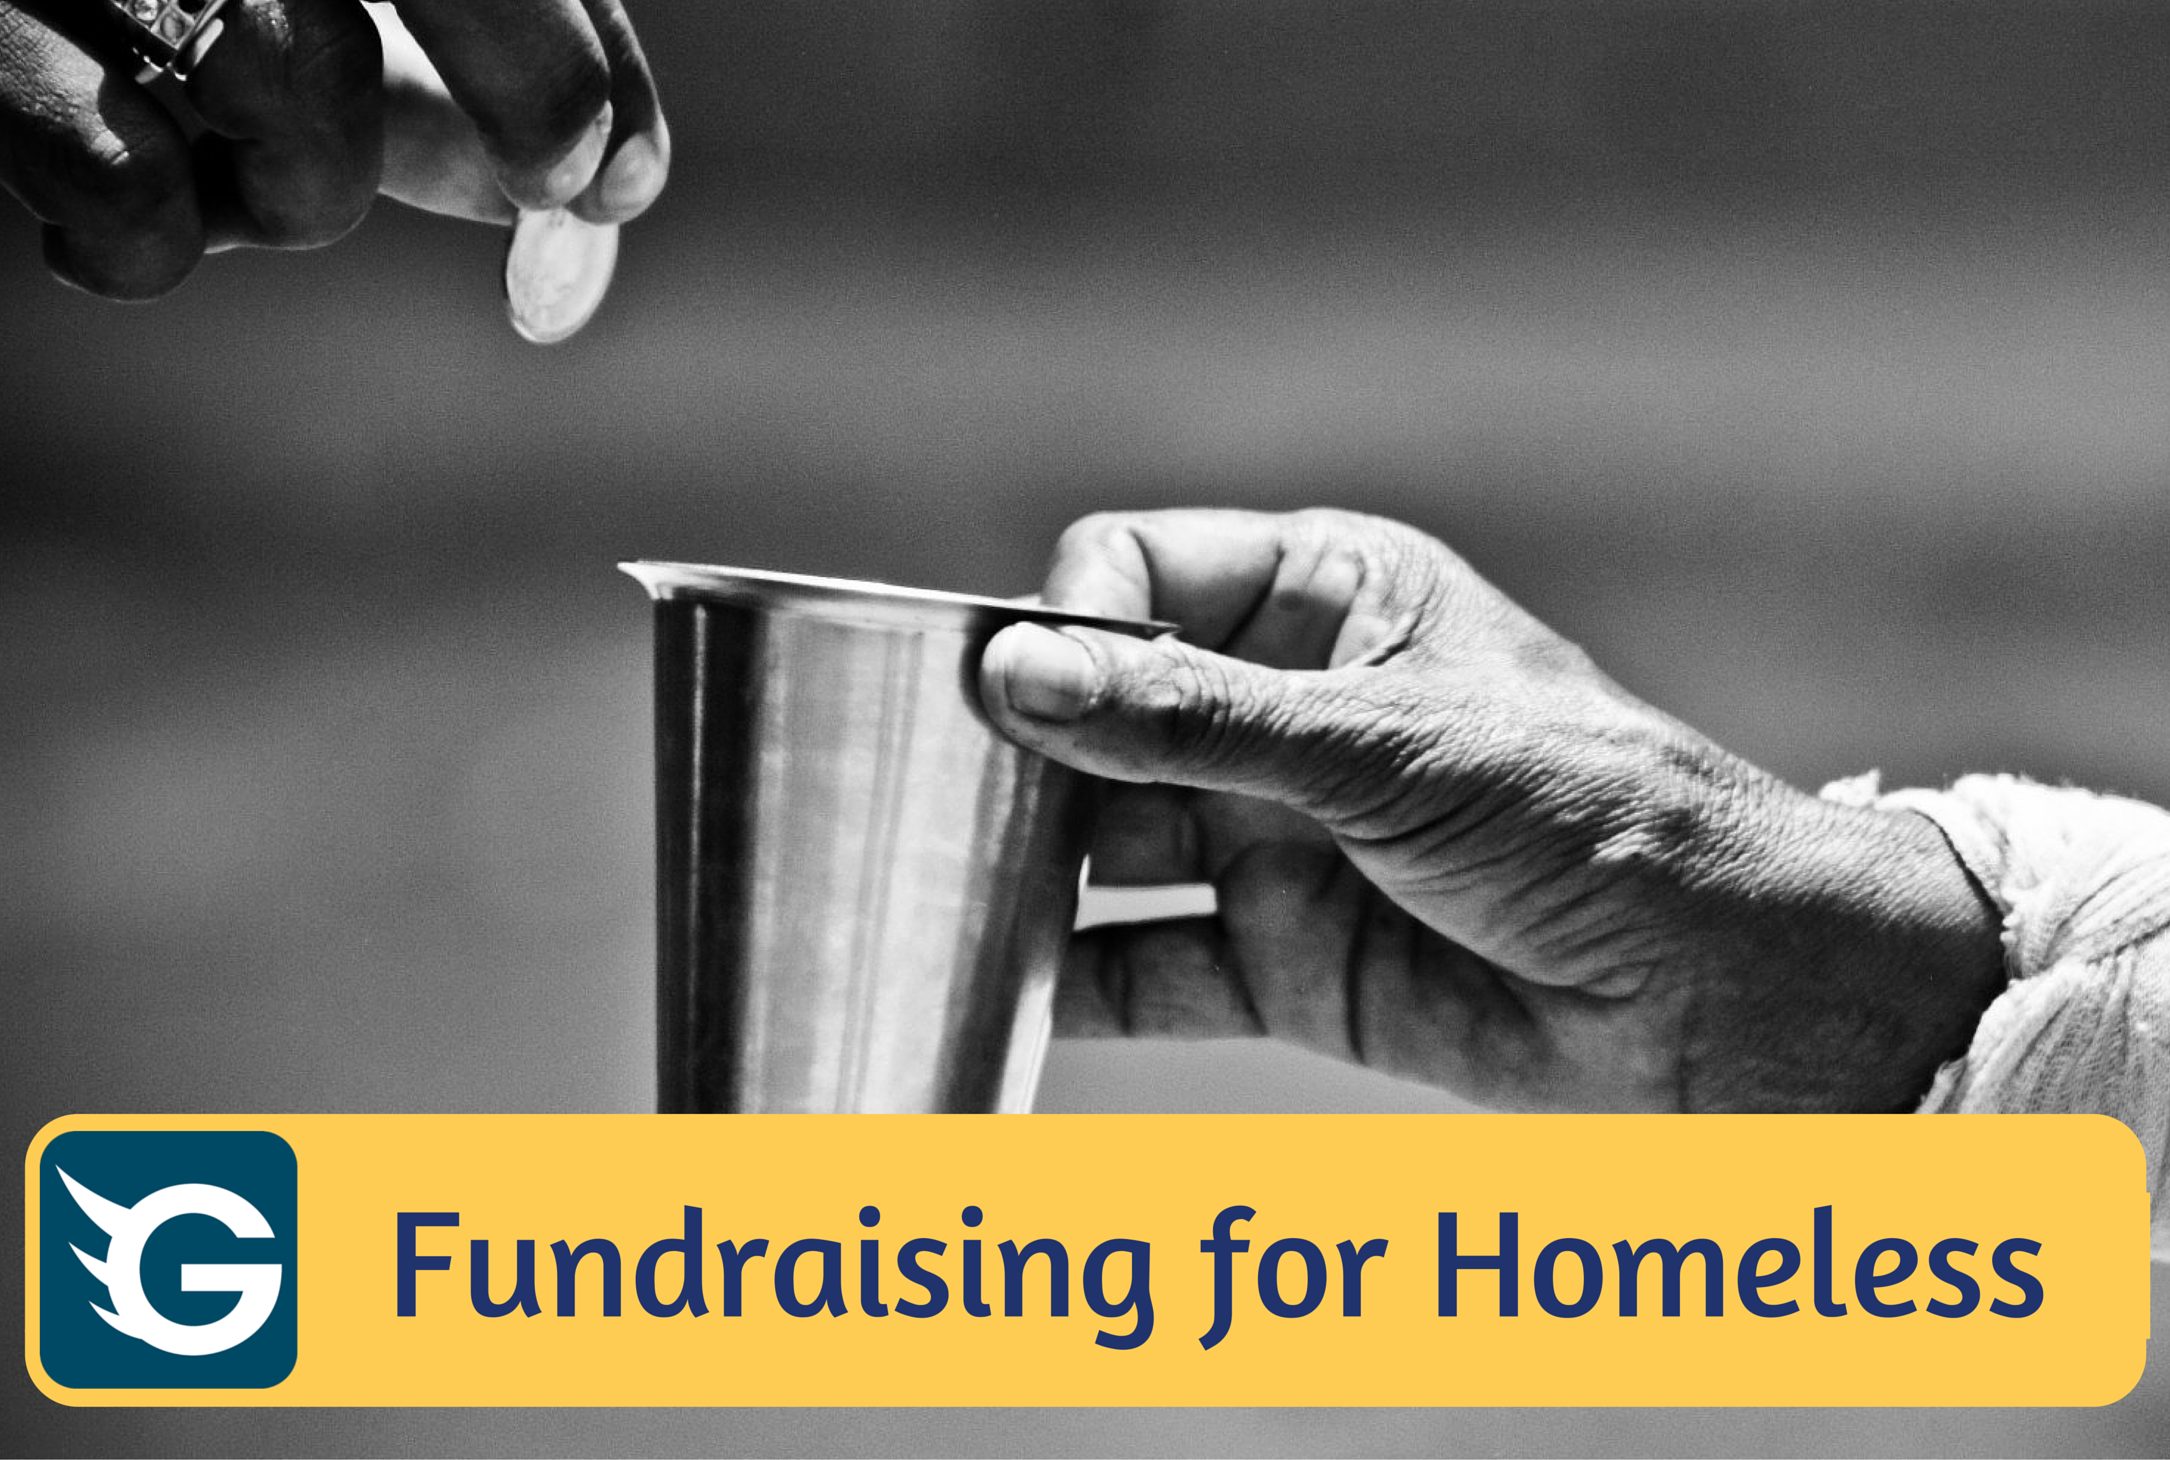 fundraising ideas for homeless if you re fundraising for homeless